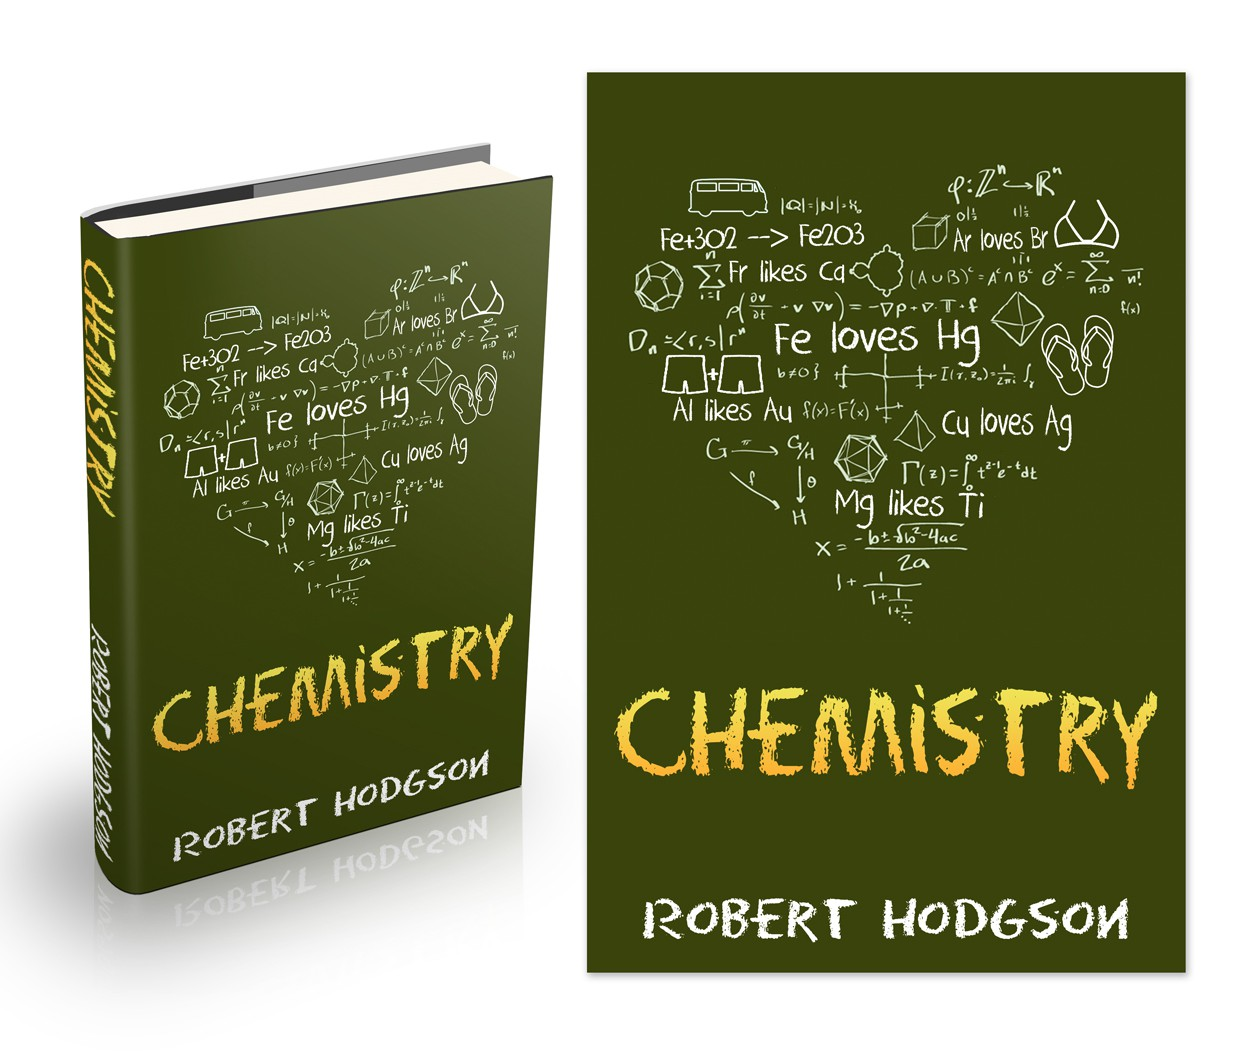 Help Robert Hodgson with a new book or magazine cover